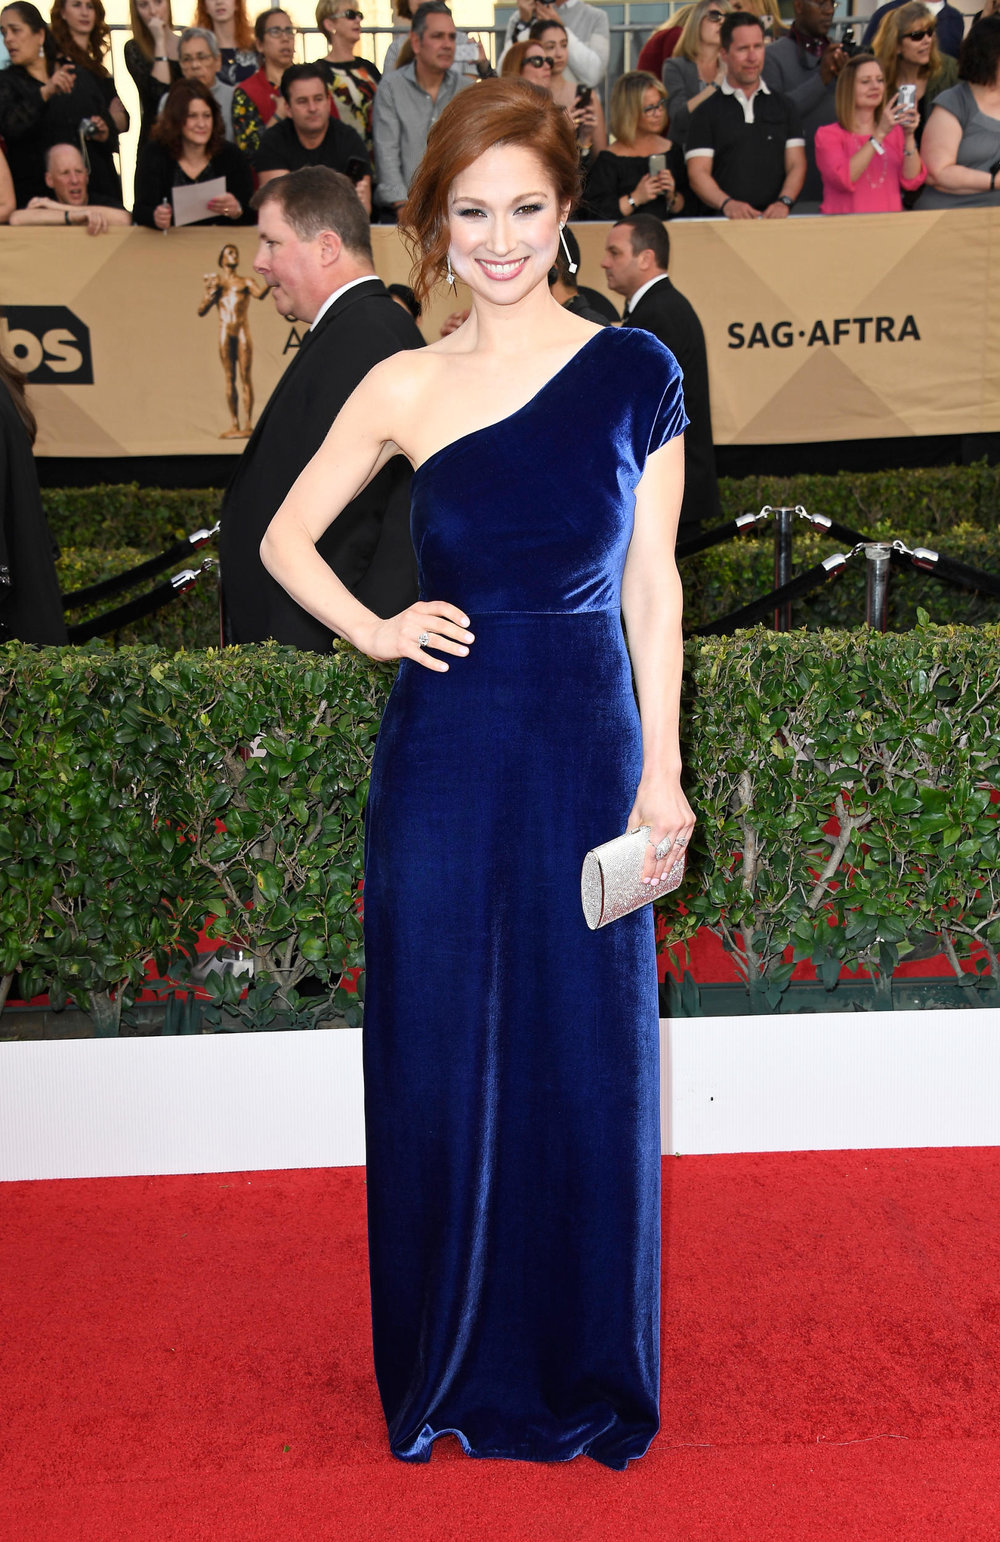 Ellie Kemper in Wai Ming at the 2017 SAG Awards Photo: Frazer Harrison/Getty Images